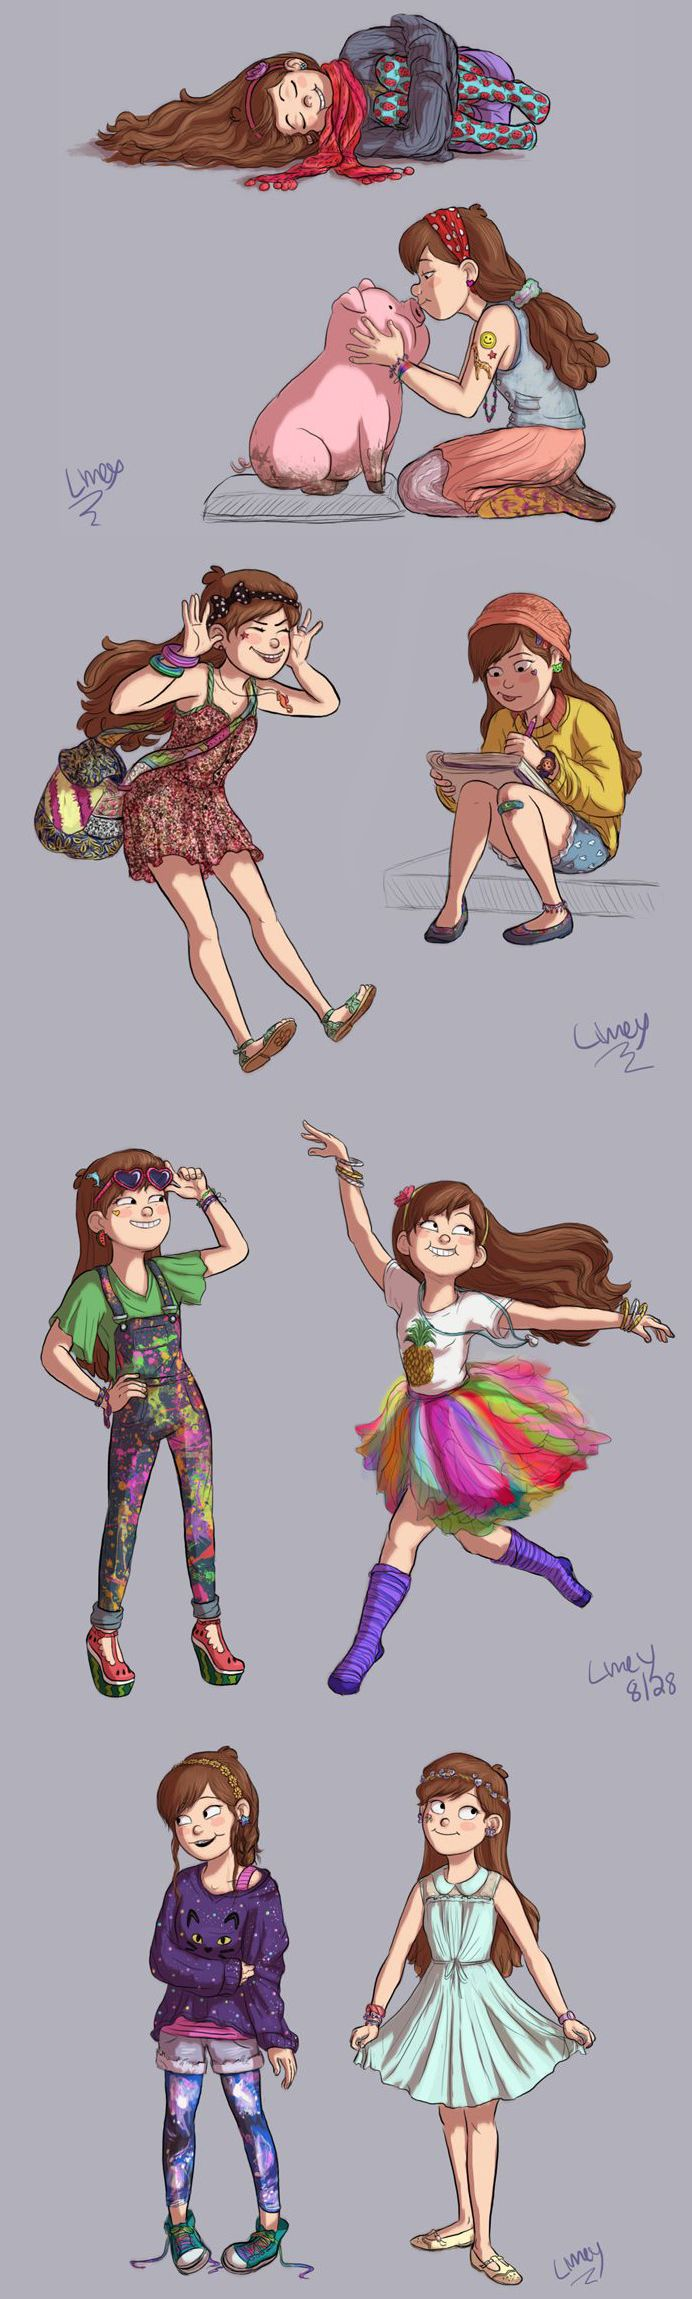 Mabel @limey404.tumblr.com THIS IS FRICKEN AMAZING